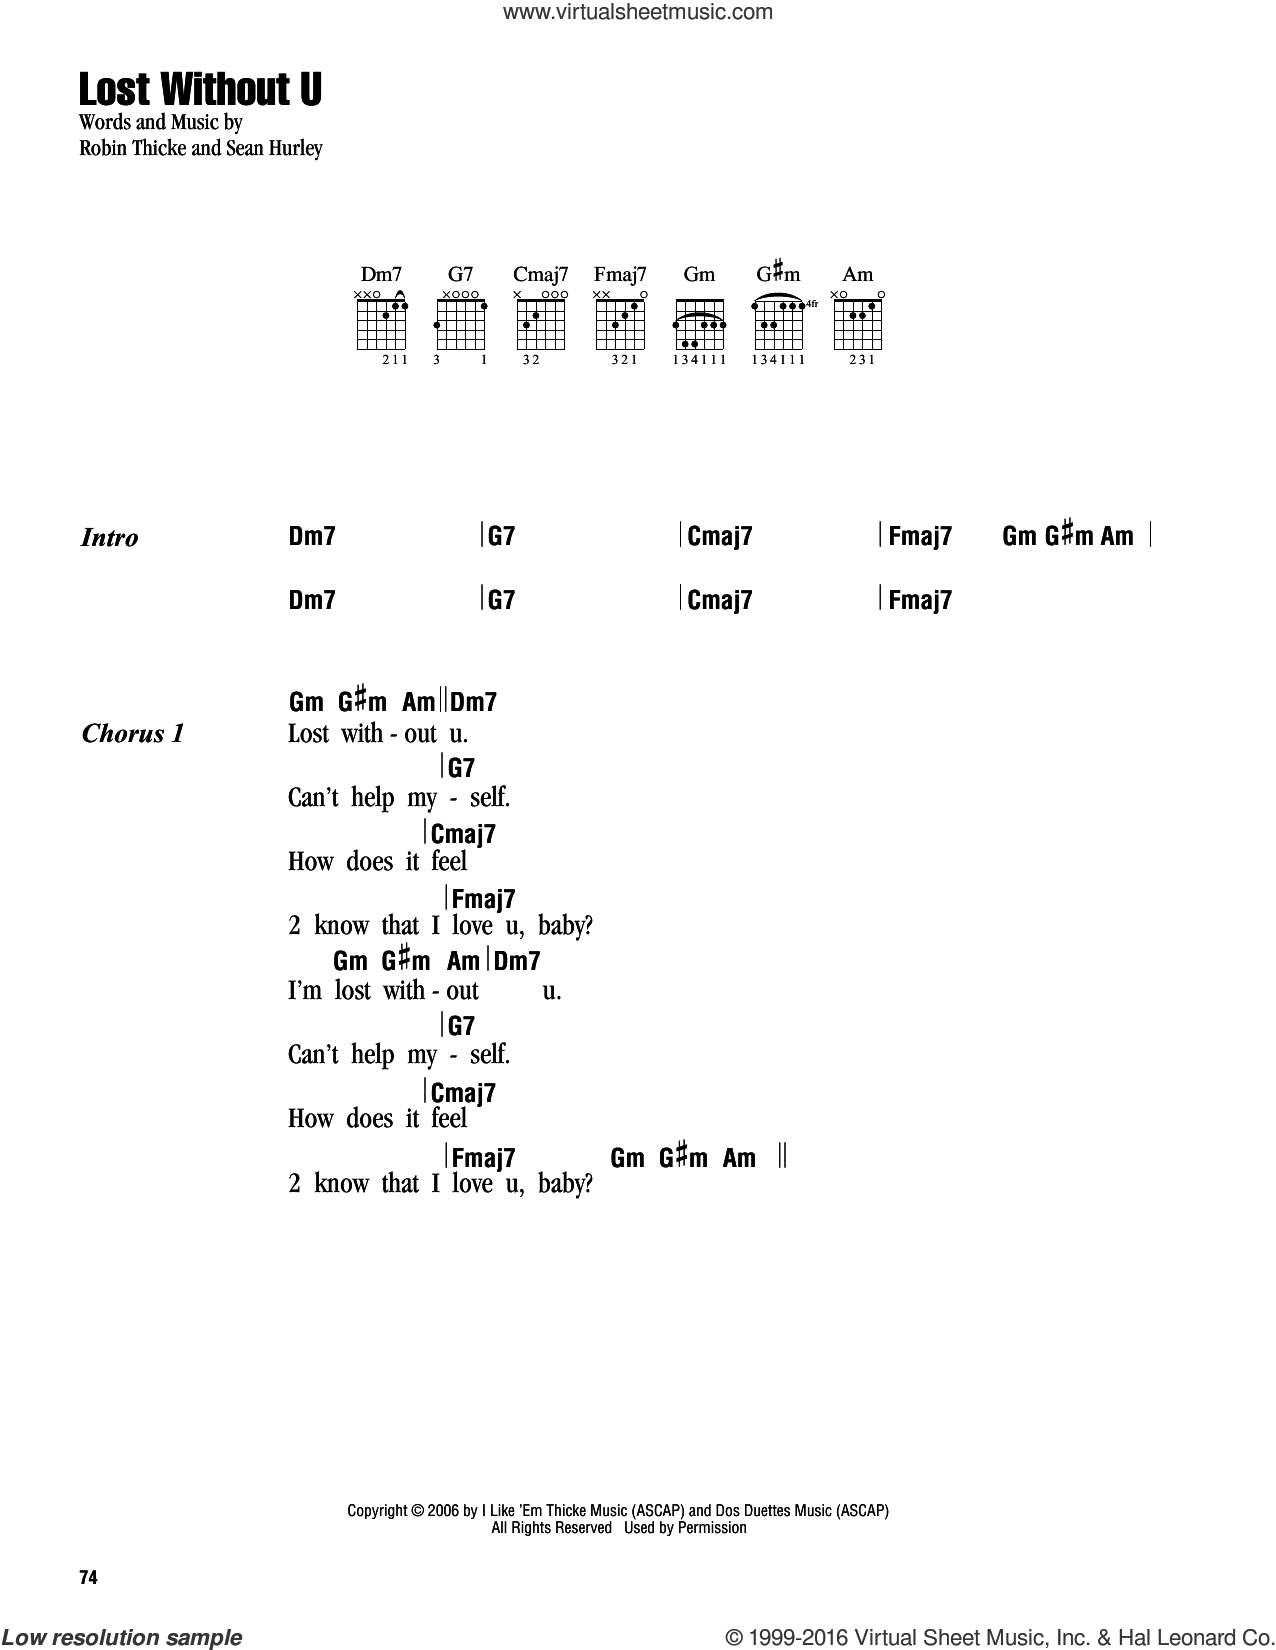 Lost Without U sheet music for guitar (chords) by Robin Thicke. Score Image Preview.